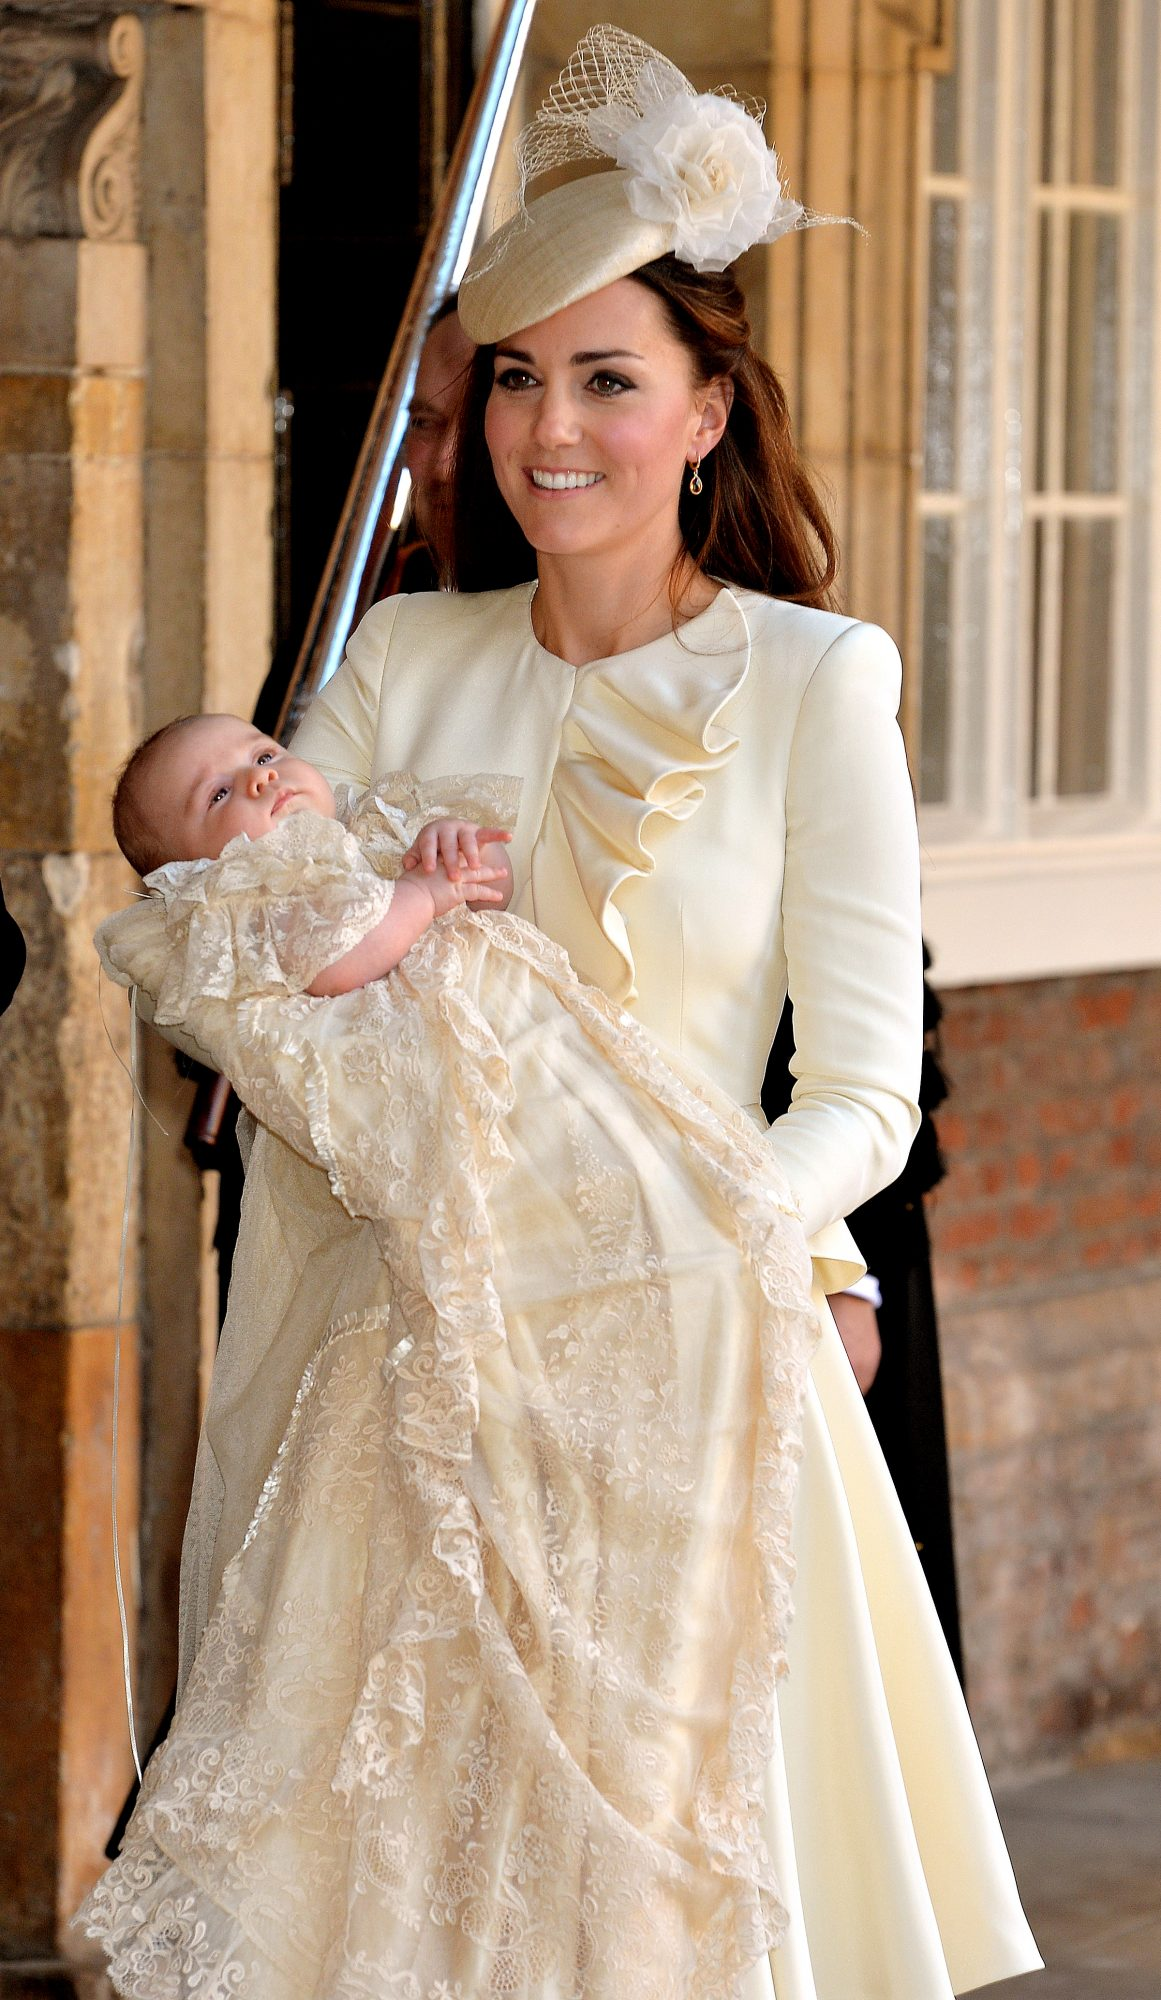 Our Prince Charming! 15 Adorable Photos of George Beautiful Christening